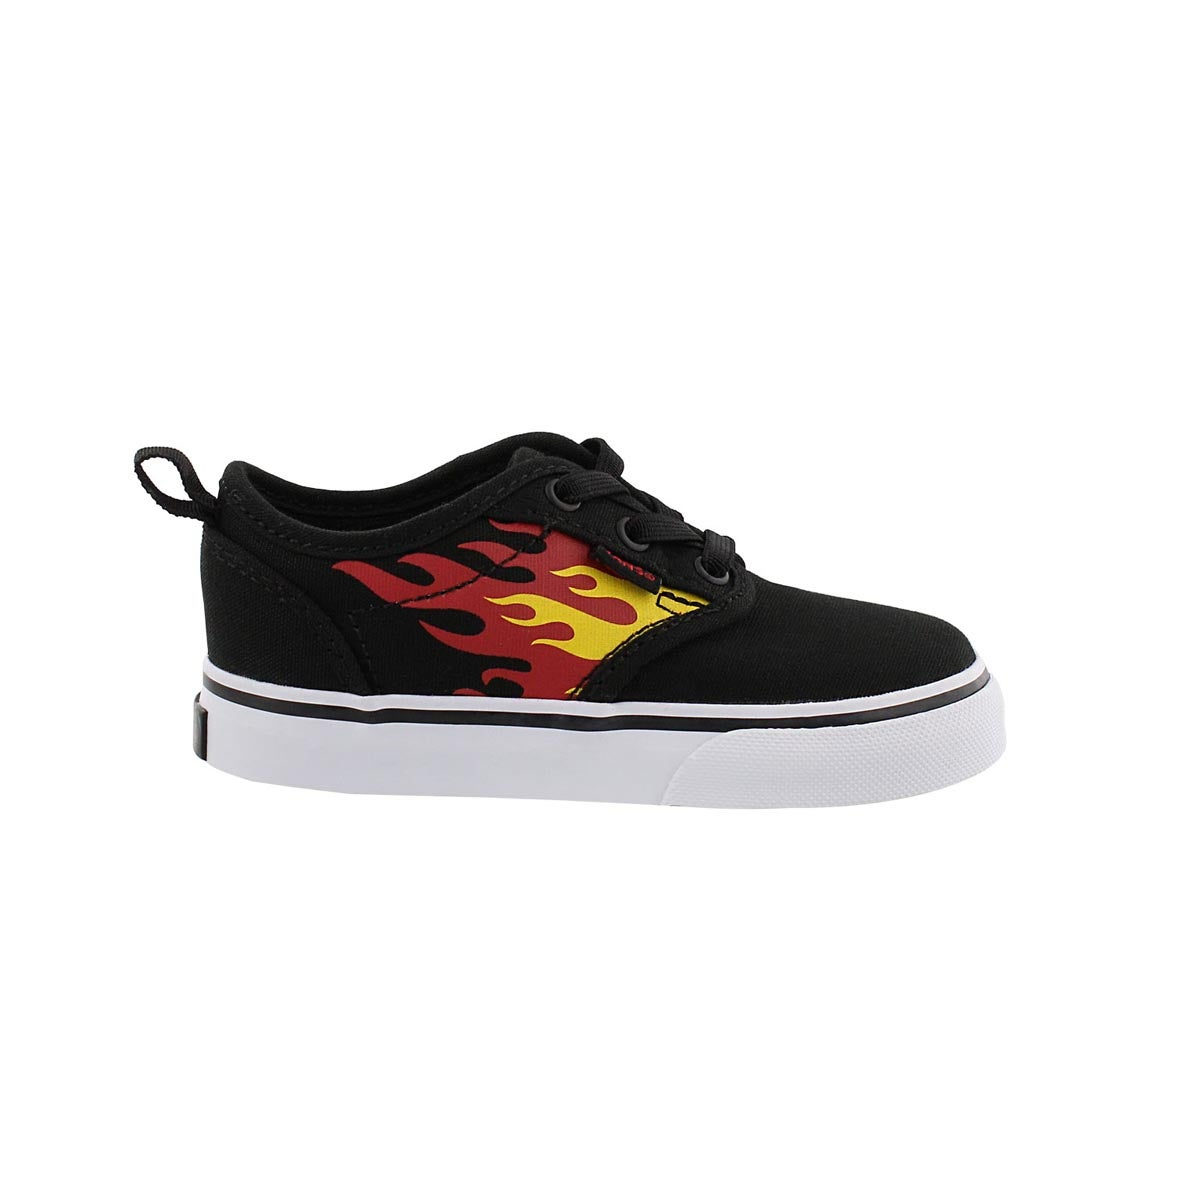 Infs Atwood Slip-On blk/flame sneaker